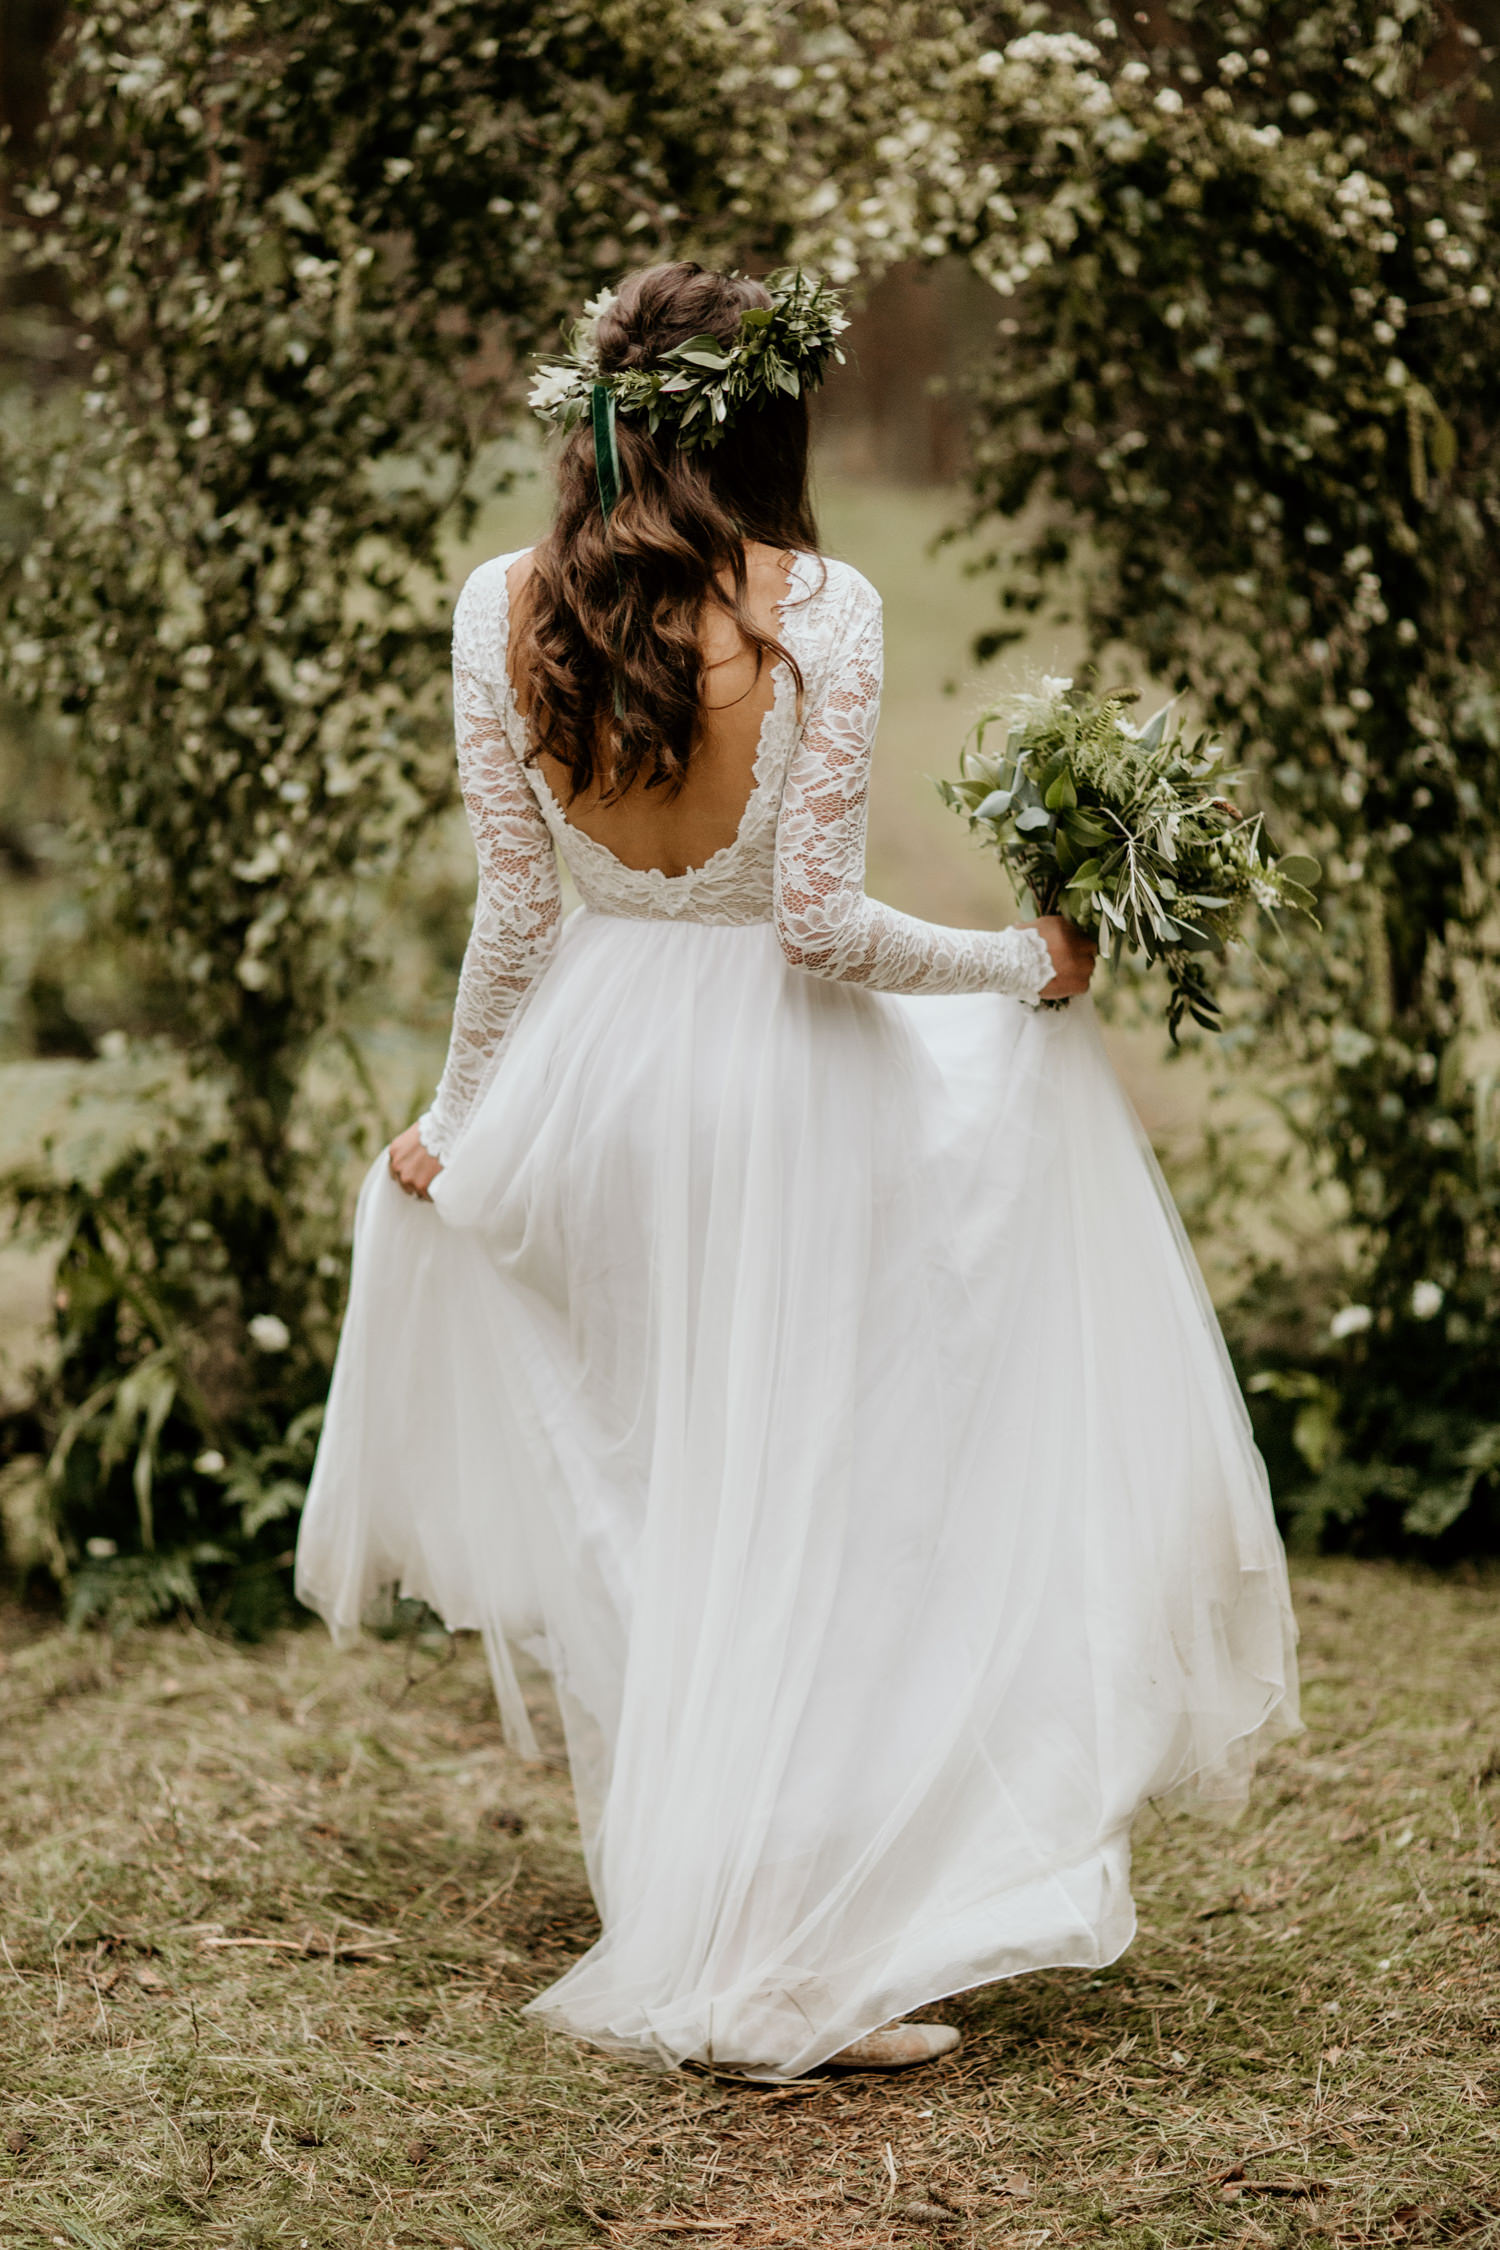 Wear your Love Ethical wedding dress for a forest elopement at Harvest Moon Holidays Scotland